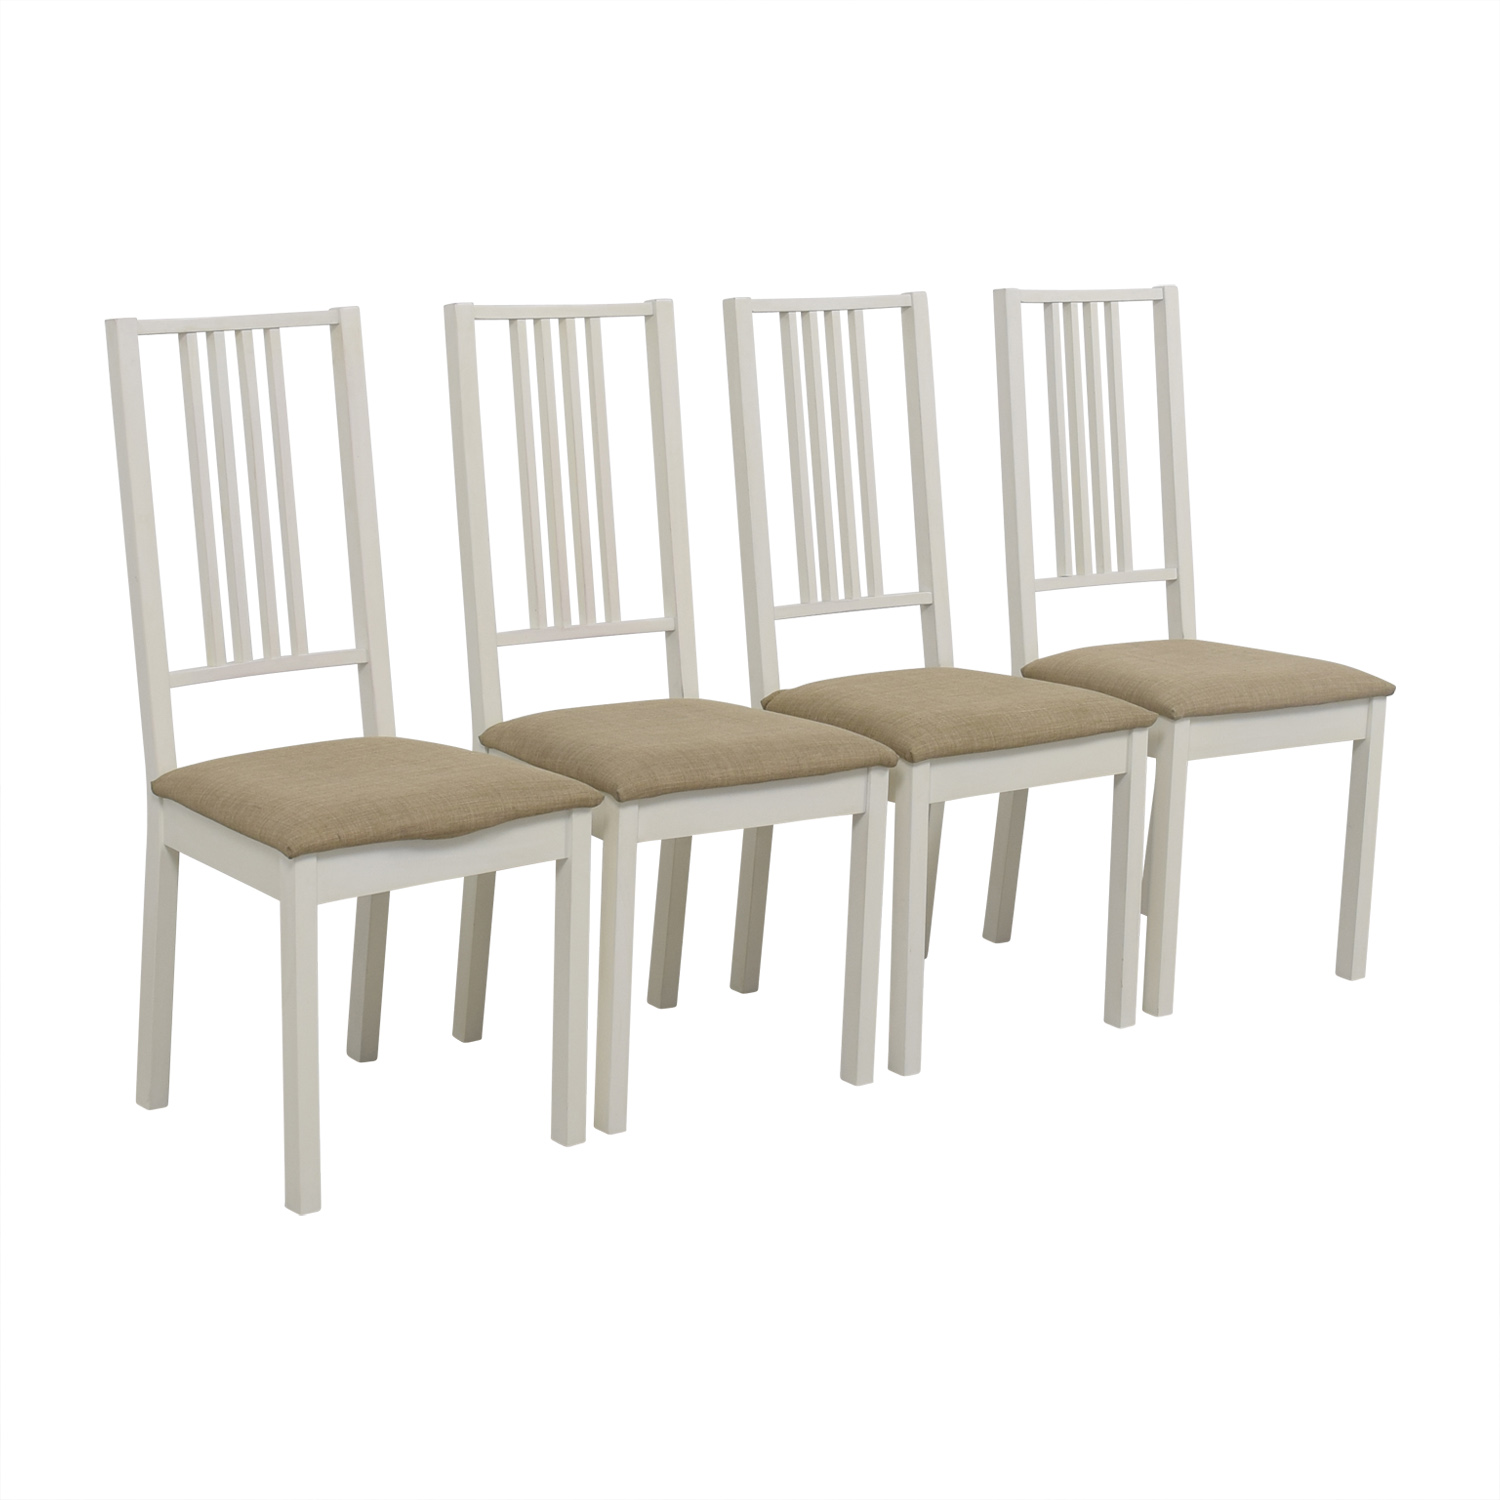 82 OFF IKEA IKEA White With Tan Upholstered Dining